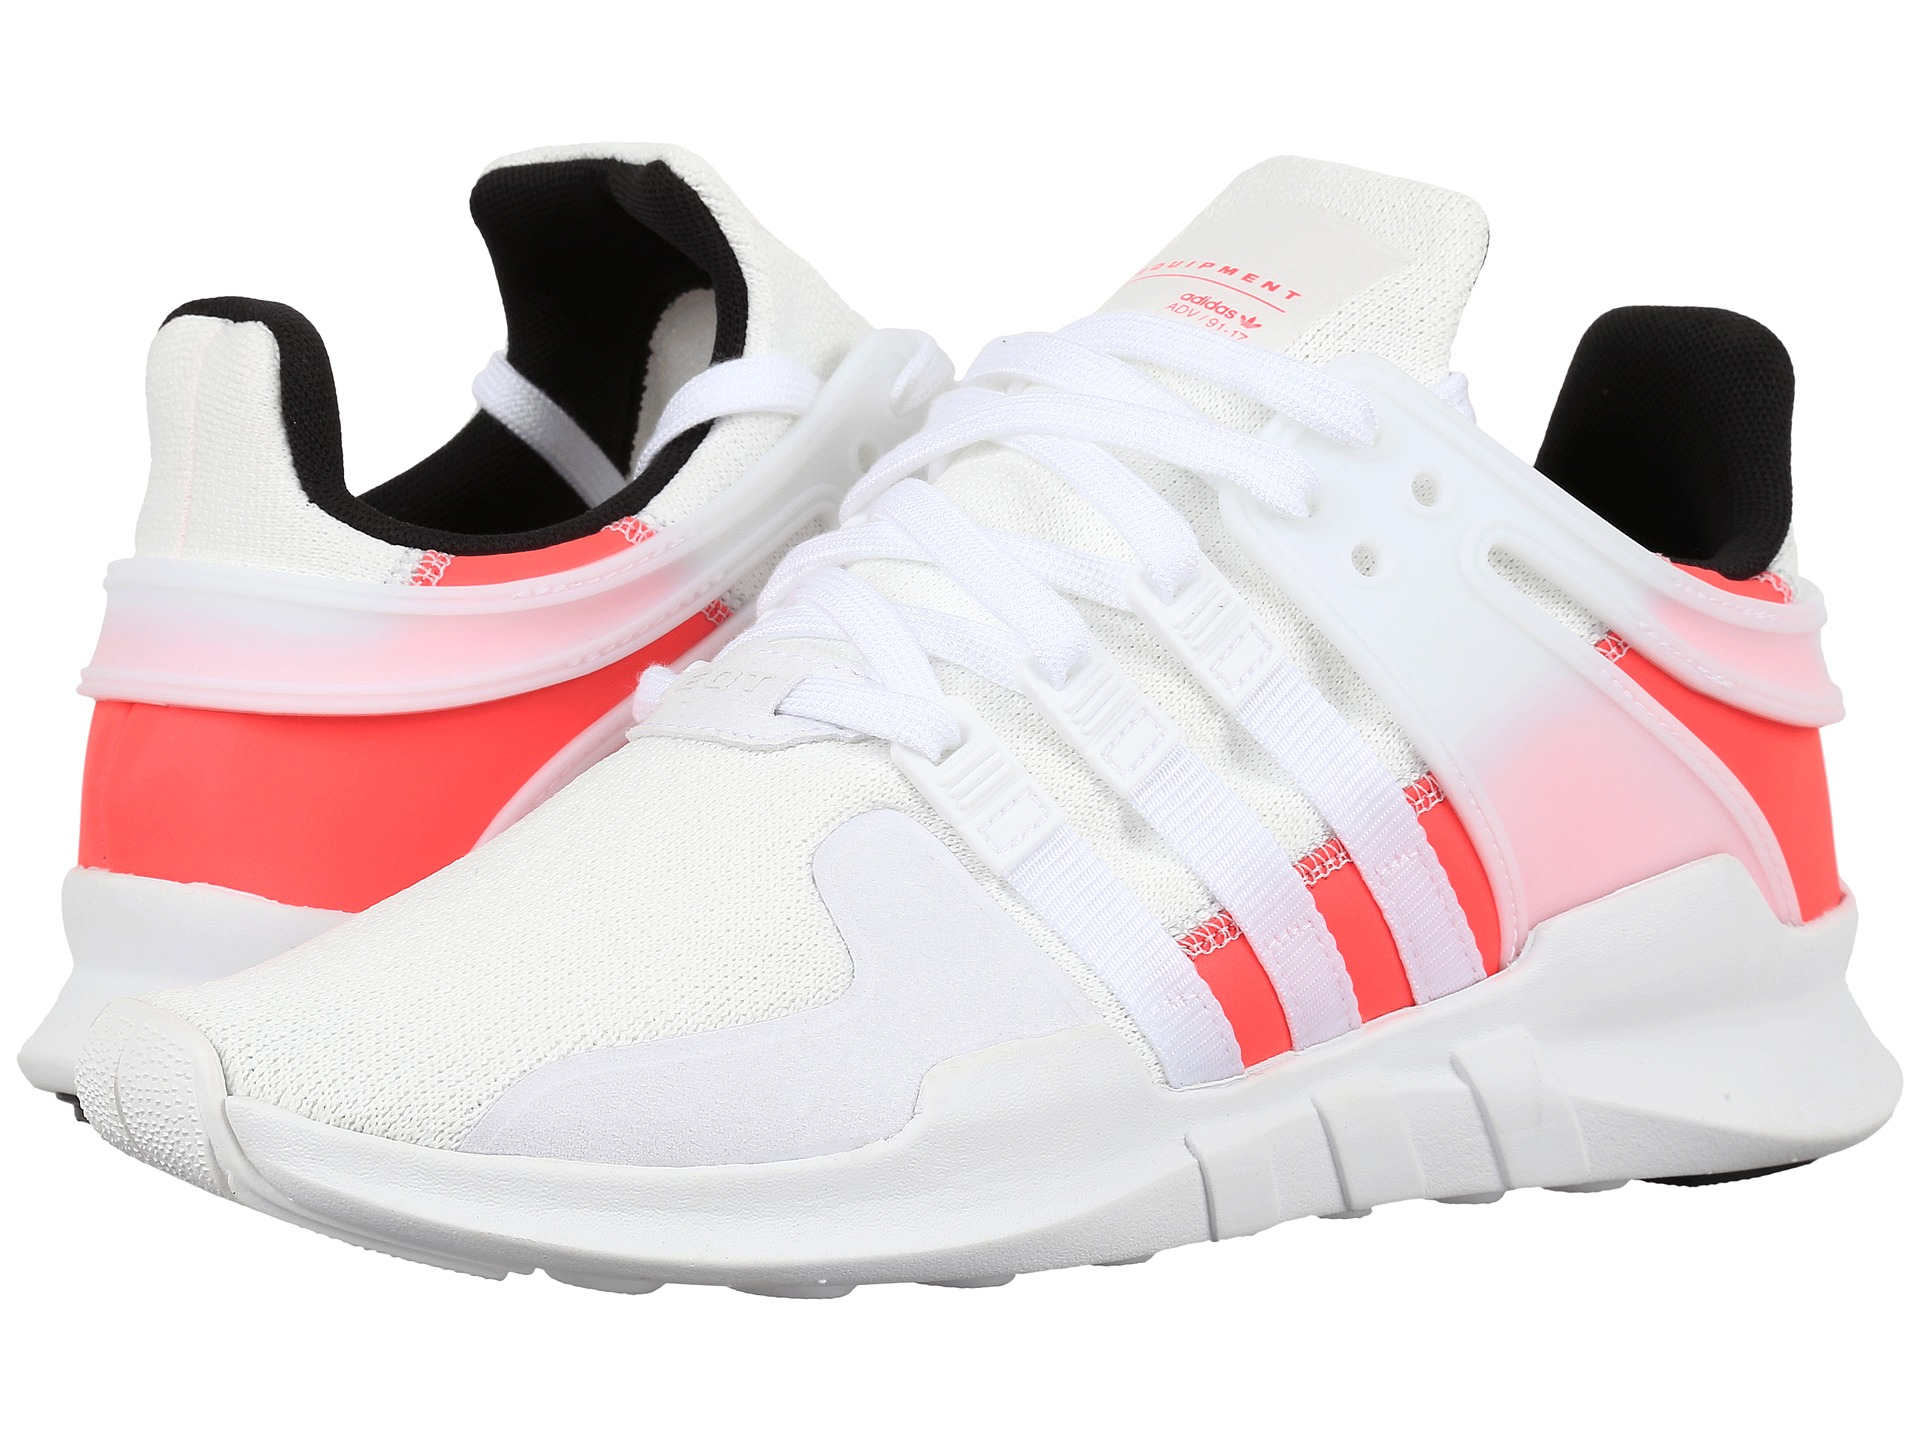 Adidas Eqt Support Rf Primeknit City Gear